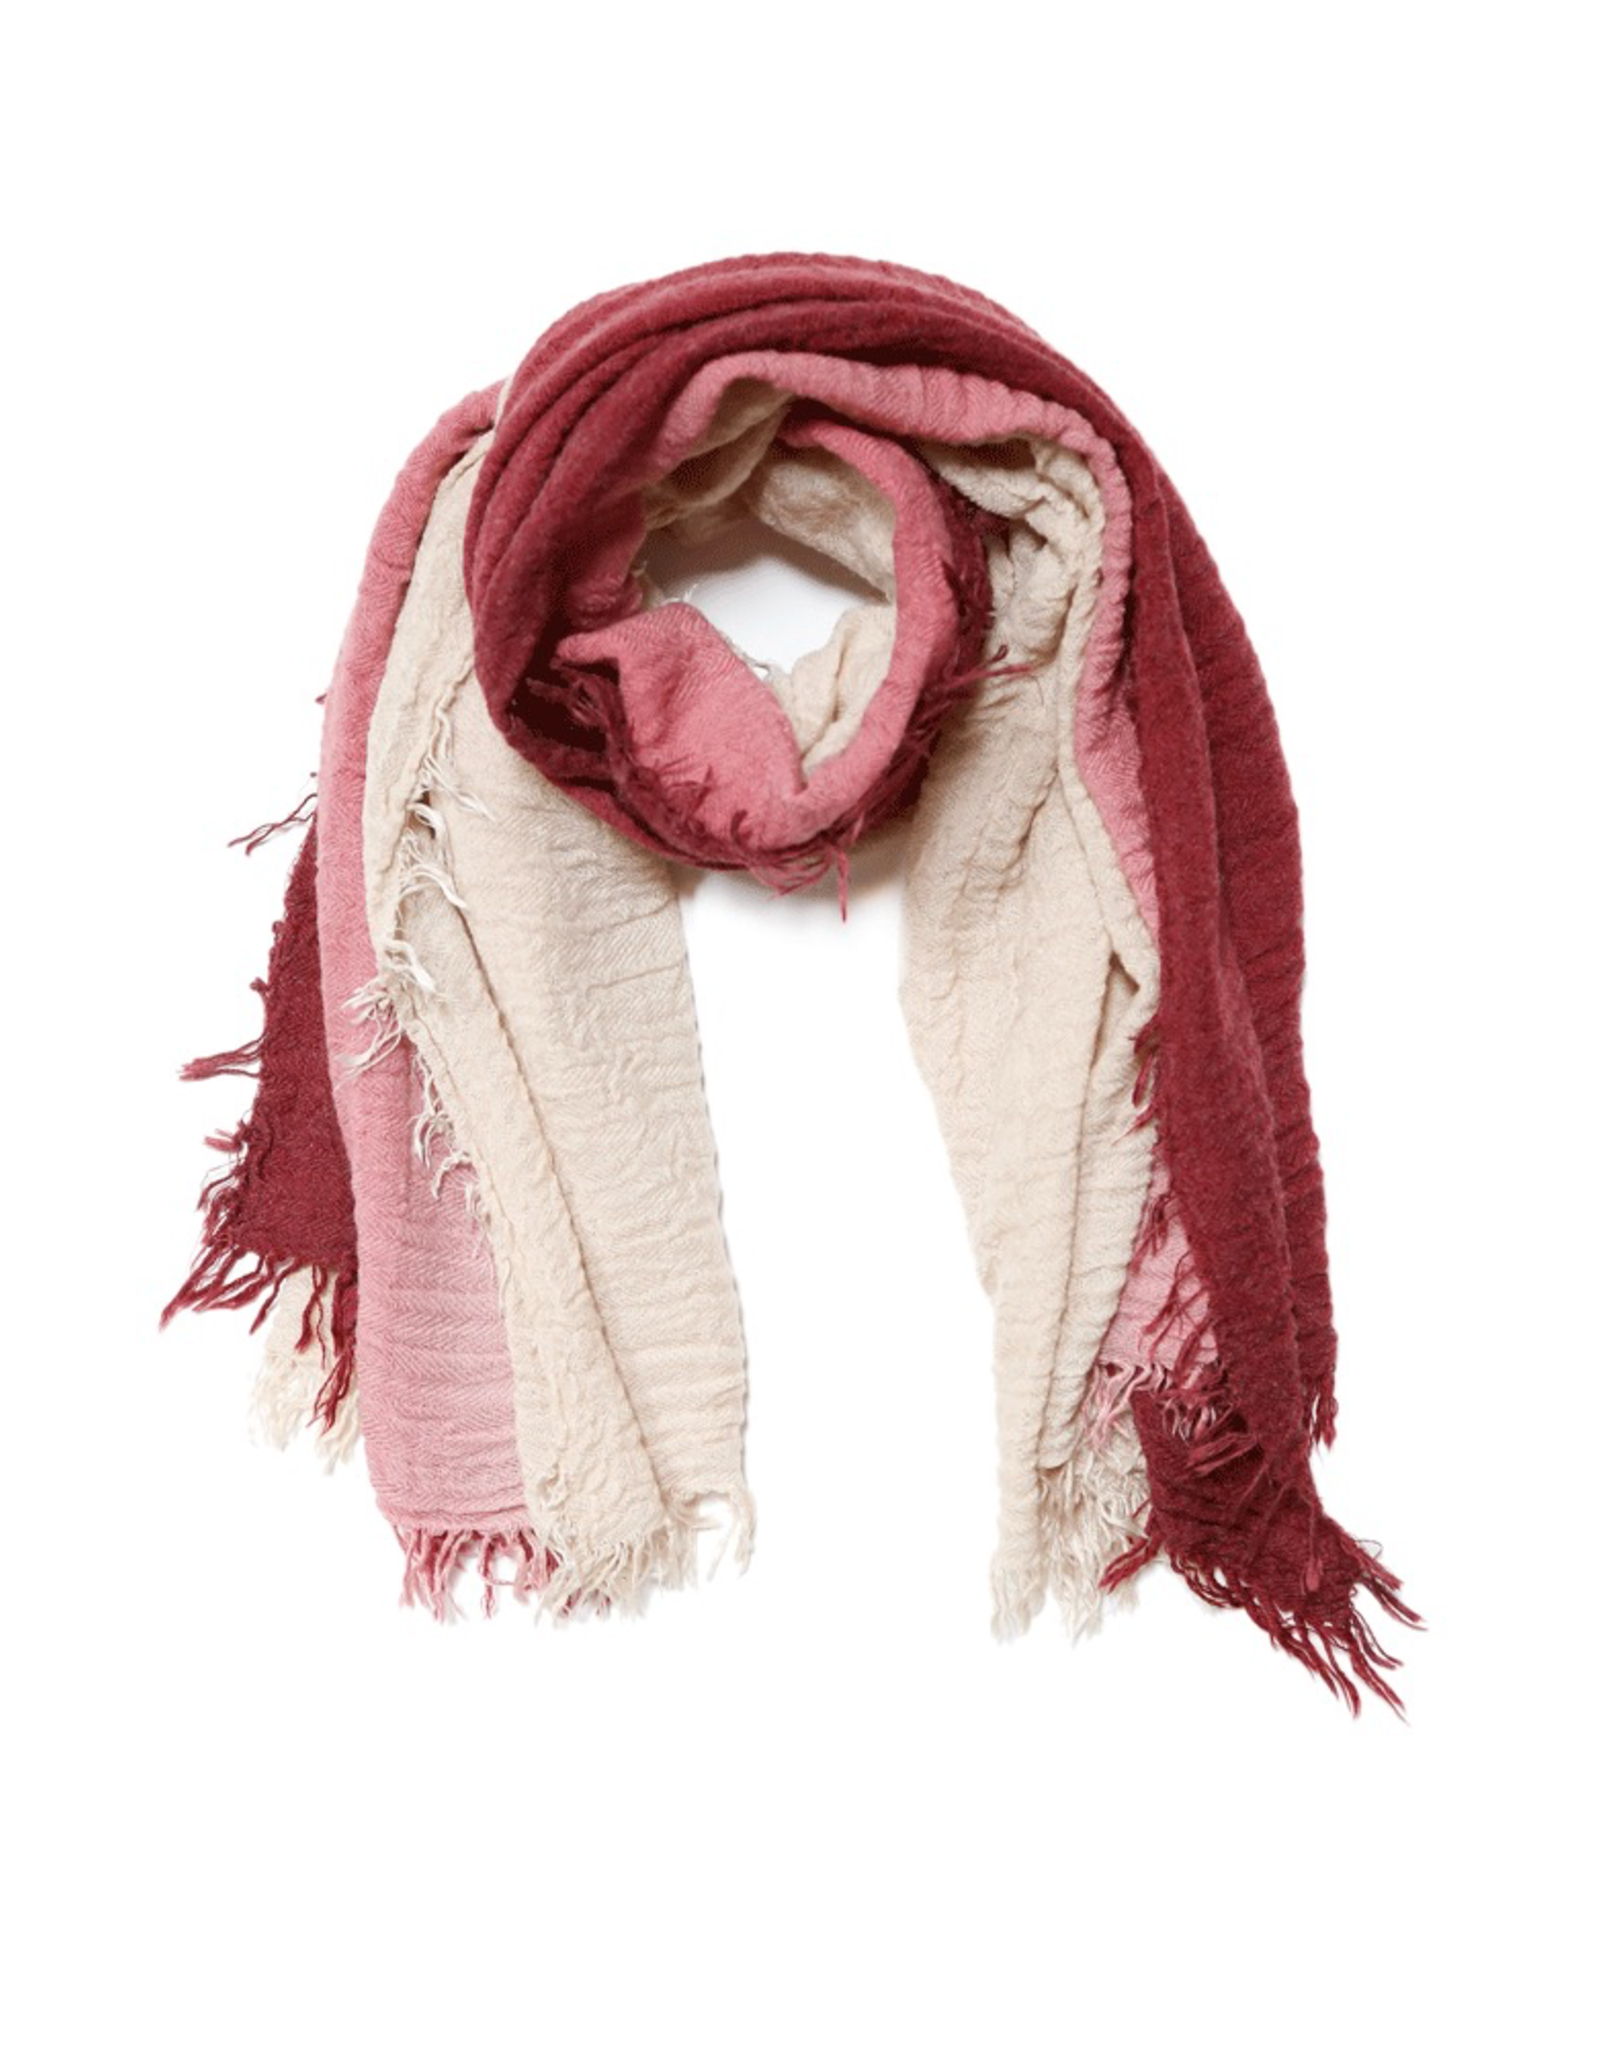 Scarf, Two-Toned - Sand/Burgundy